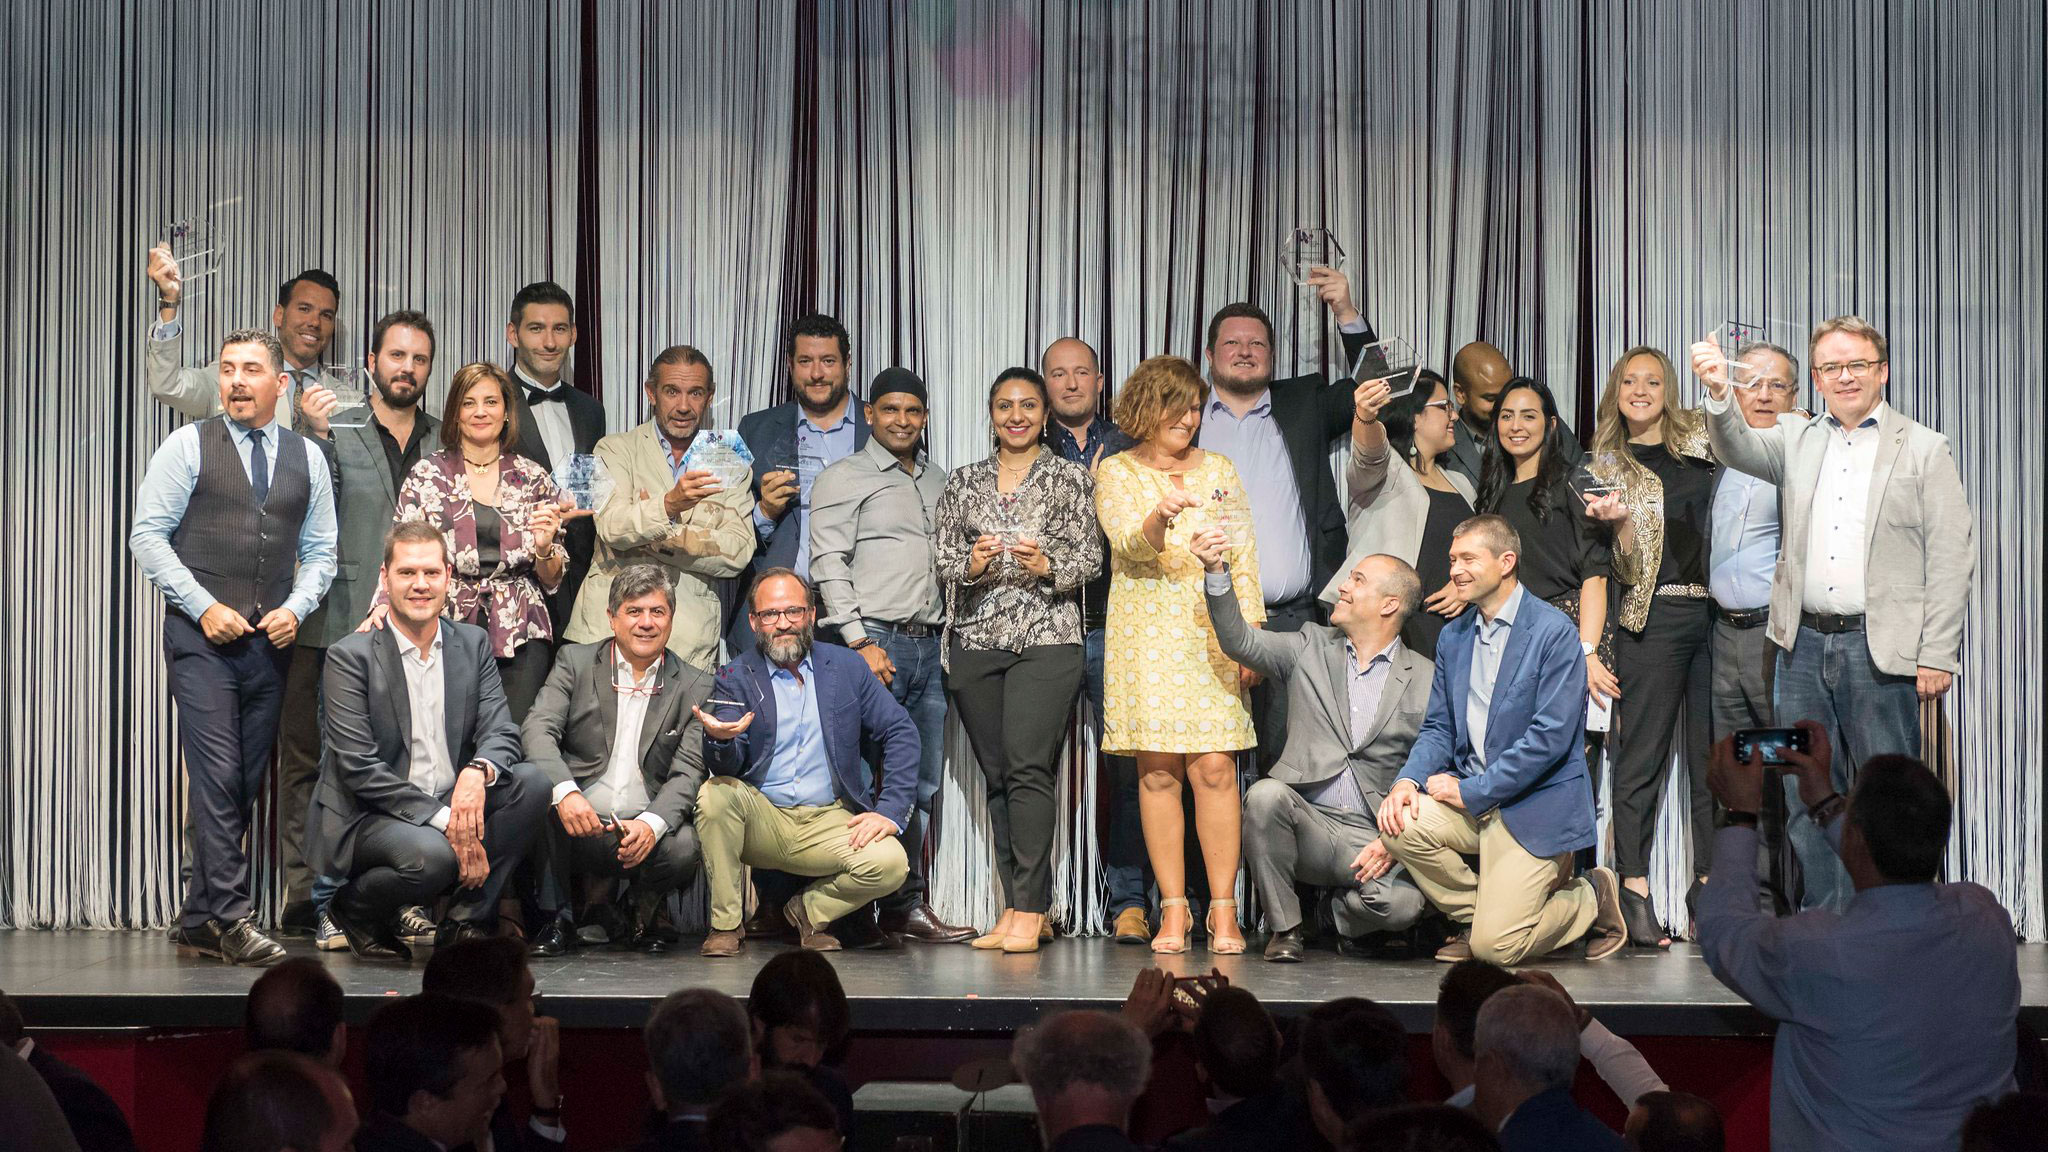 Tourism Innovation Awards 2020 is open for entries